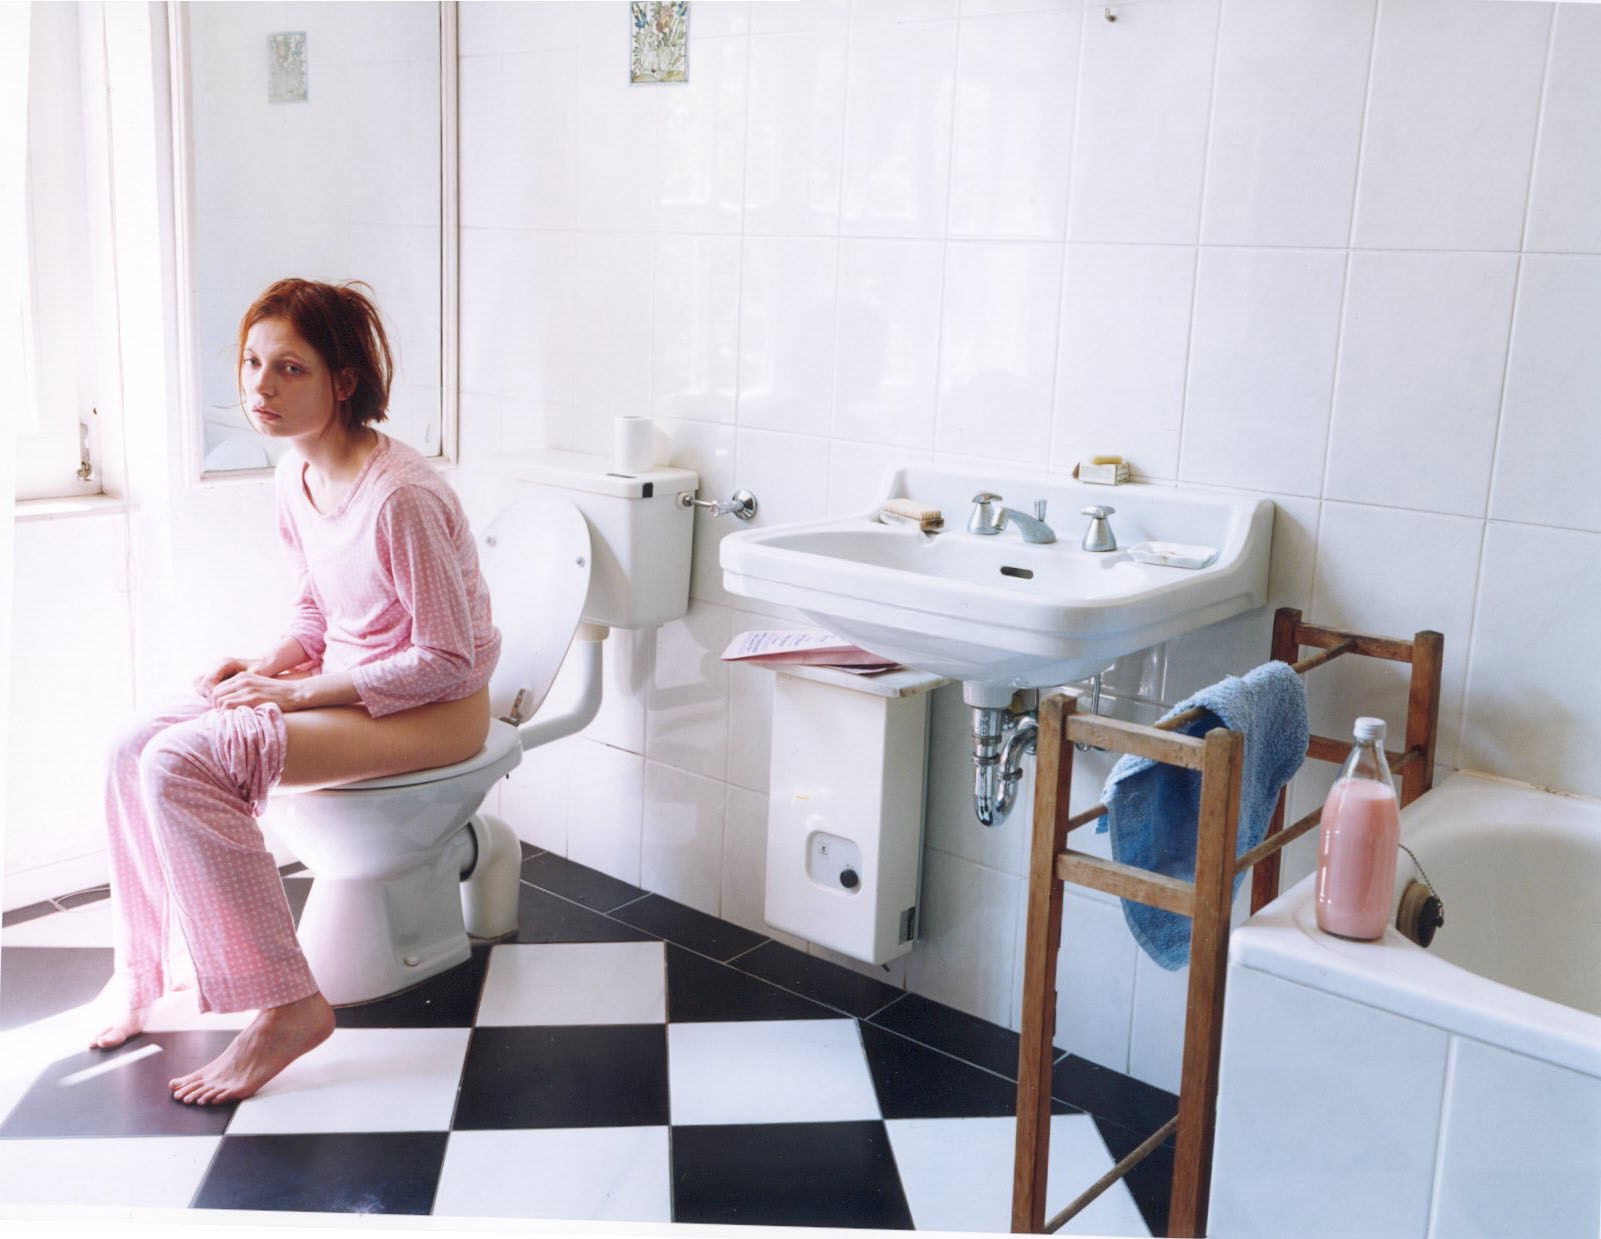 Aino's favourite image from her own photography  - Untitled (Bathroom) 1999, at the time before her first solo show when her career as an artist was just beginning.